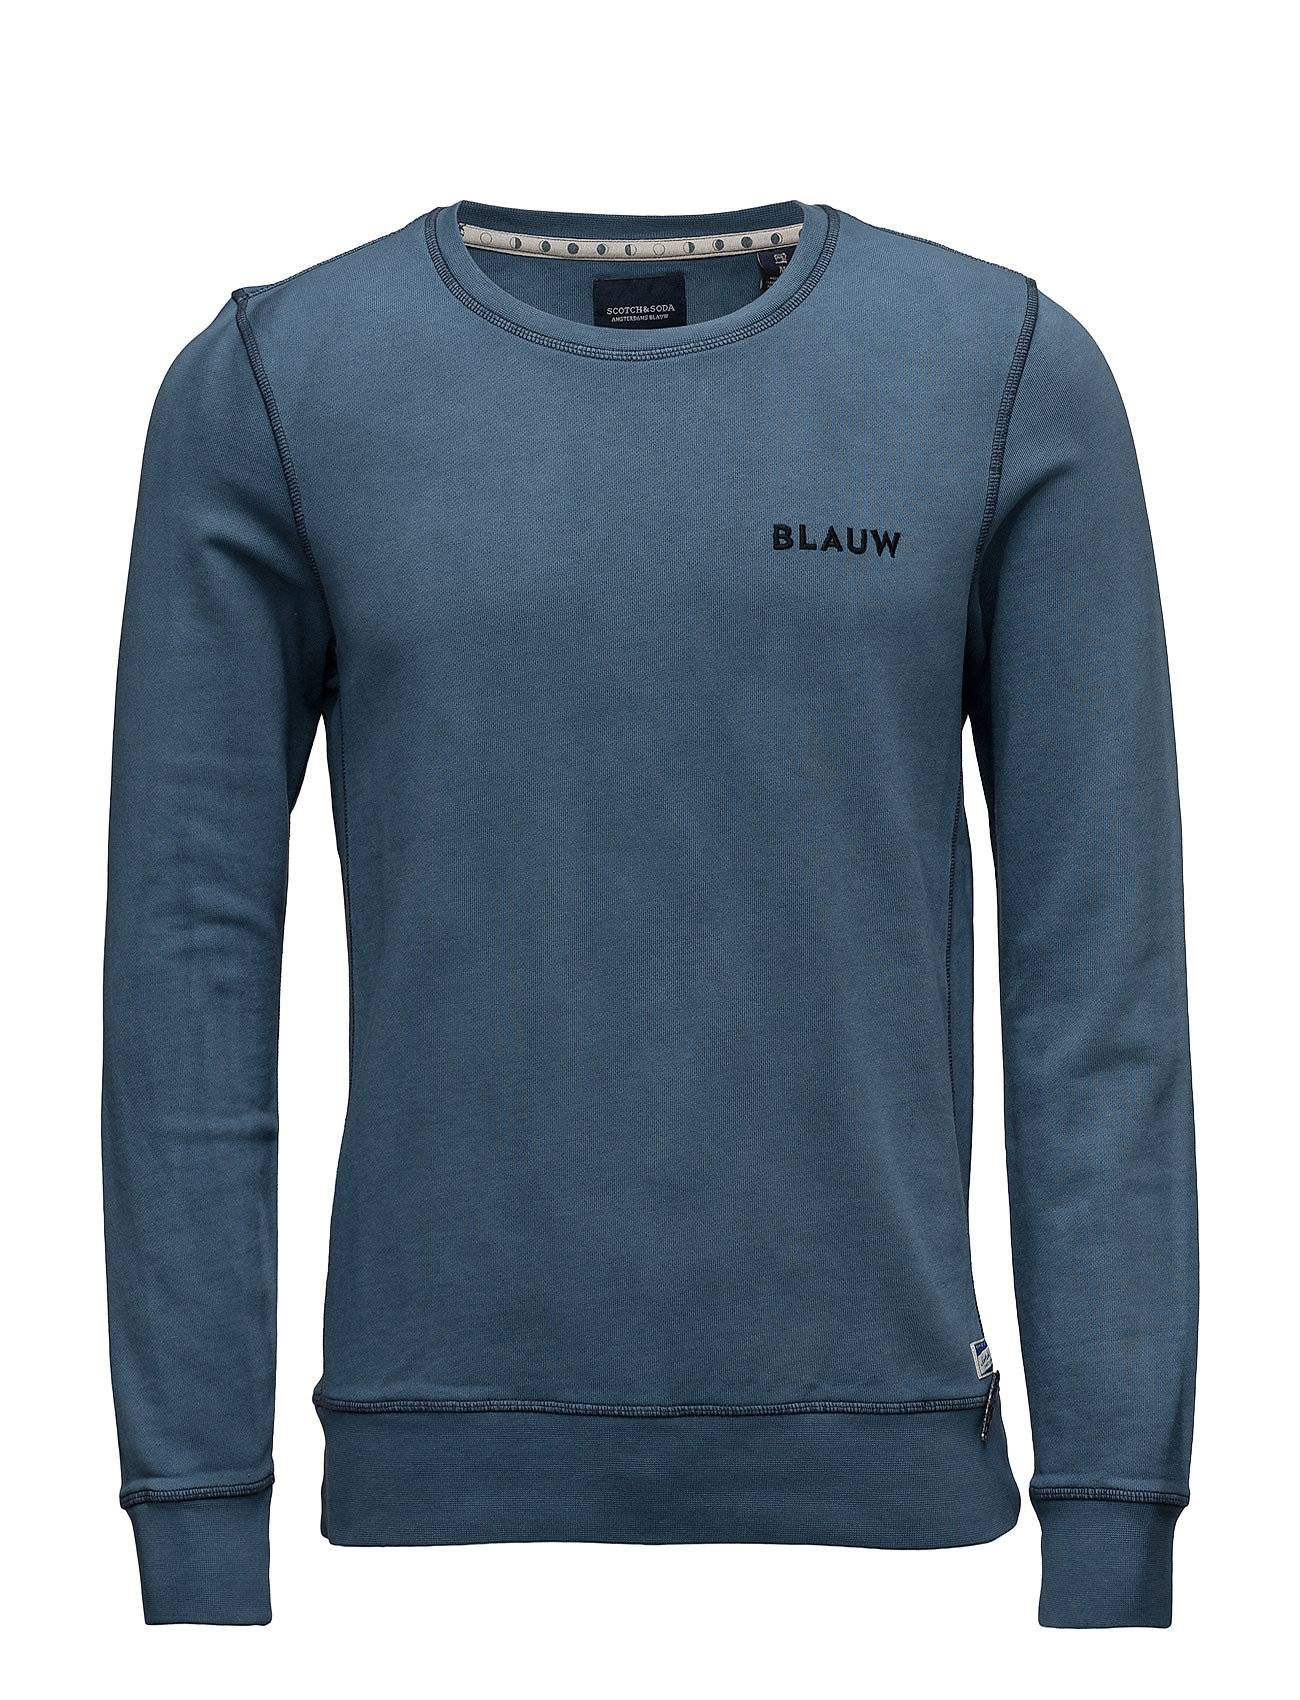 Scotch & Soda Ams Blauw Garment Dyed Sweat With Chest Embroidery